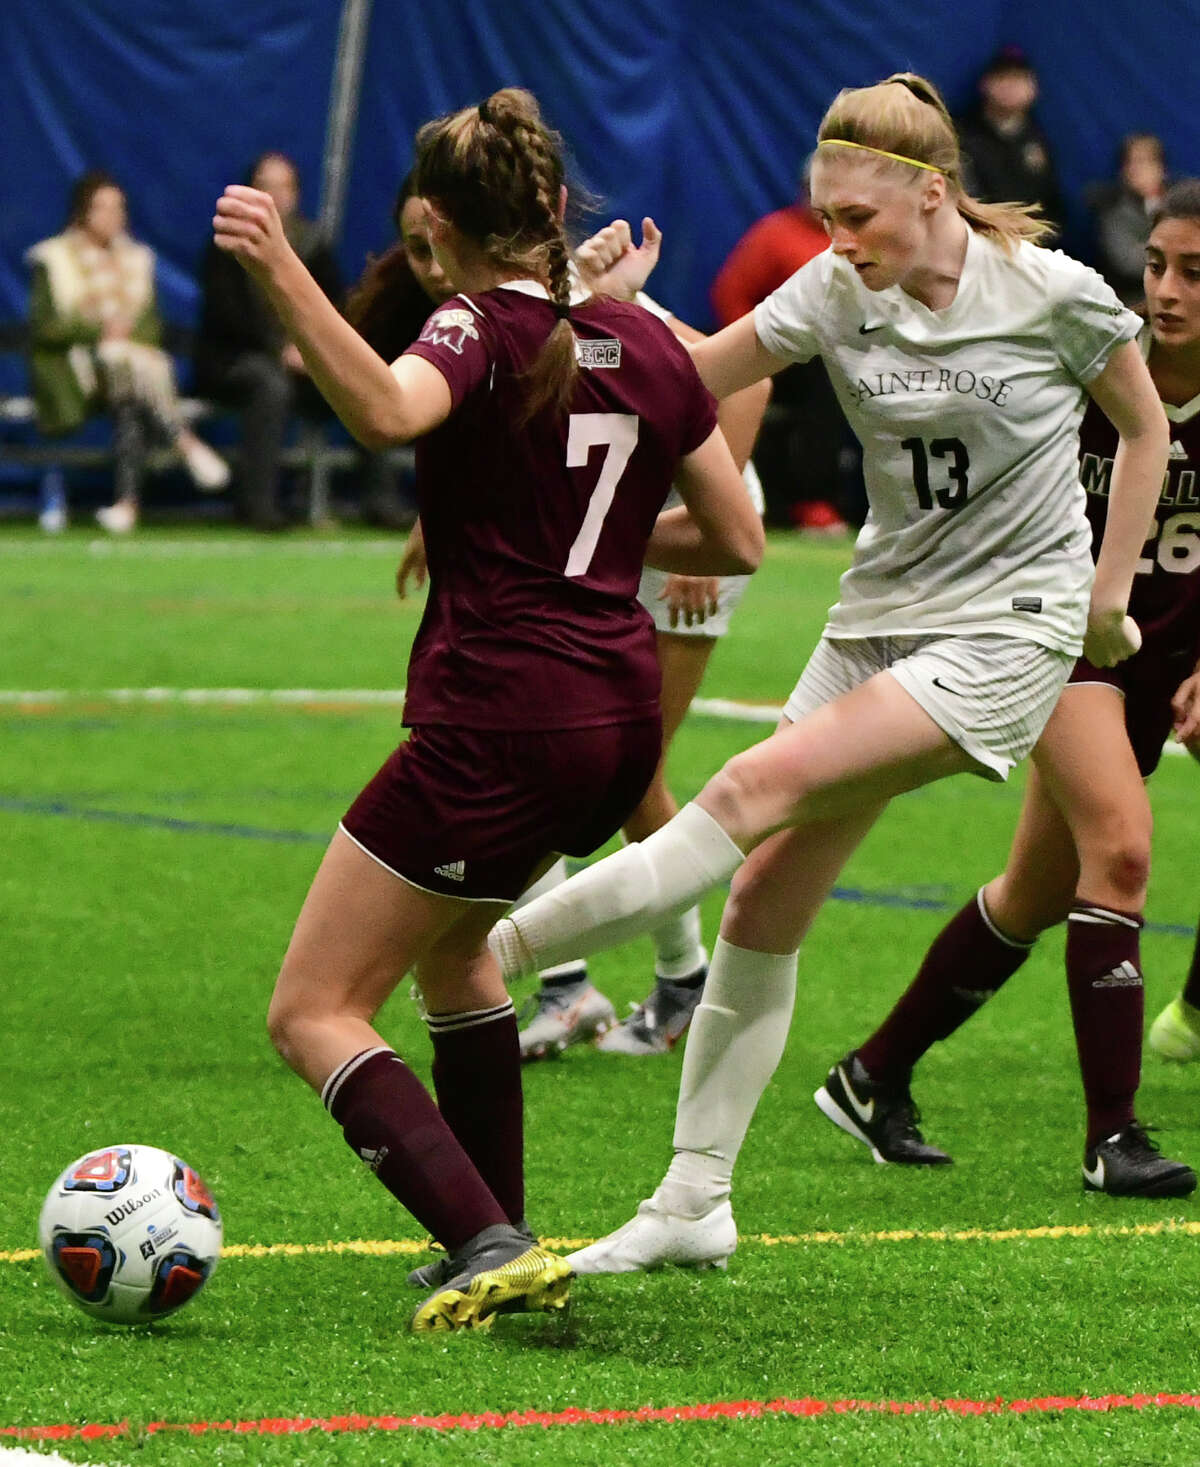 St. Rose's Olivia Boucher, #13, kicks the ball past Molloy's Joanna Mauceri, #7, to score in the first half of a third-round soccer game of the Division II NCAA Tournament at Afrim's Sports Complex on Friday, Dec. 6, 2019 in Colonie, N.Y. (Lori Van Buren/Times Union)